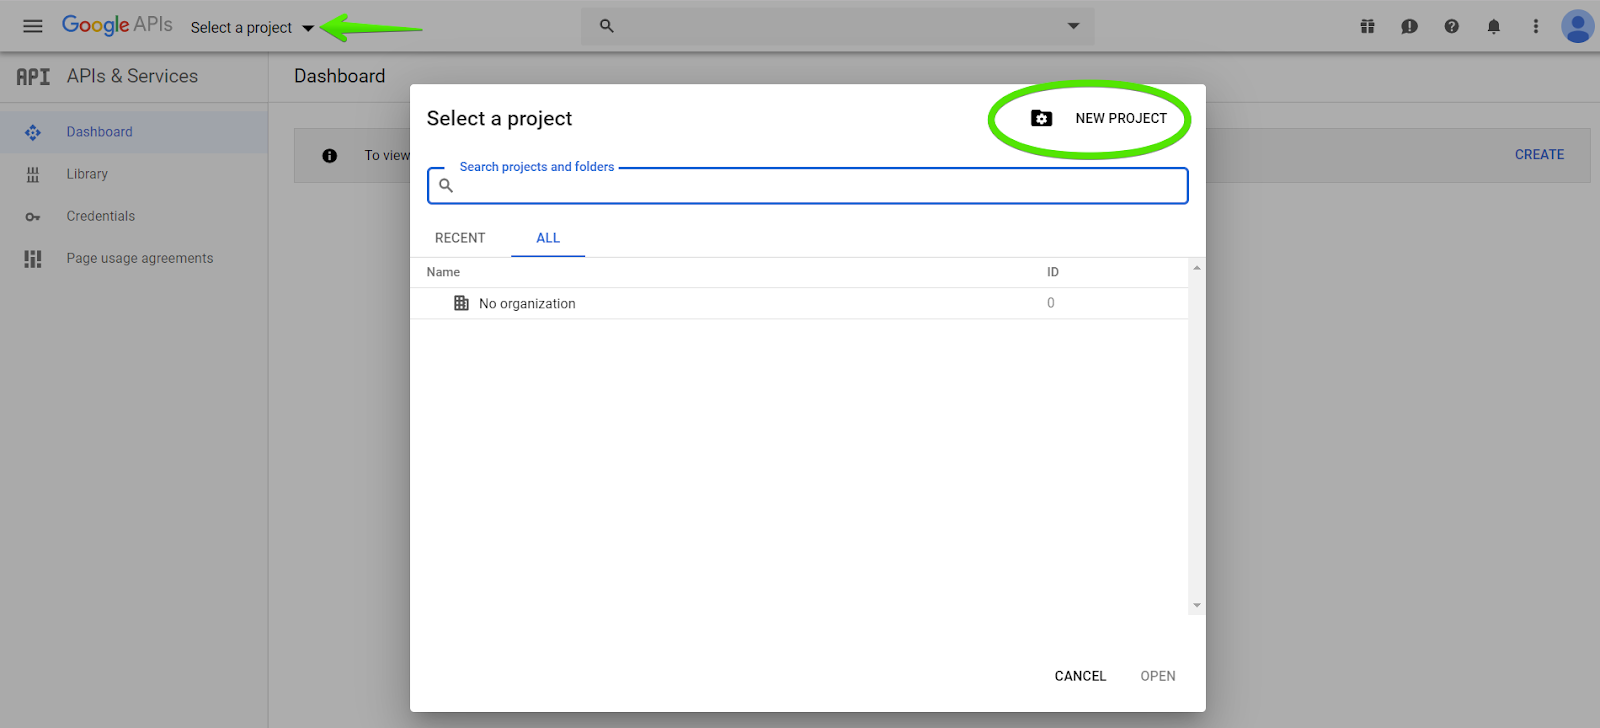 How to Send and Read Emails with Gmail API | Mailtrap Blog